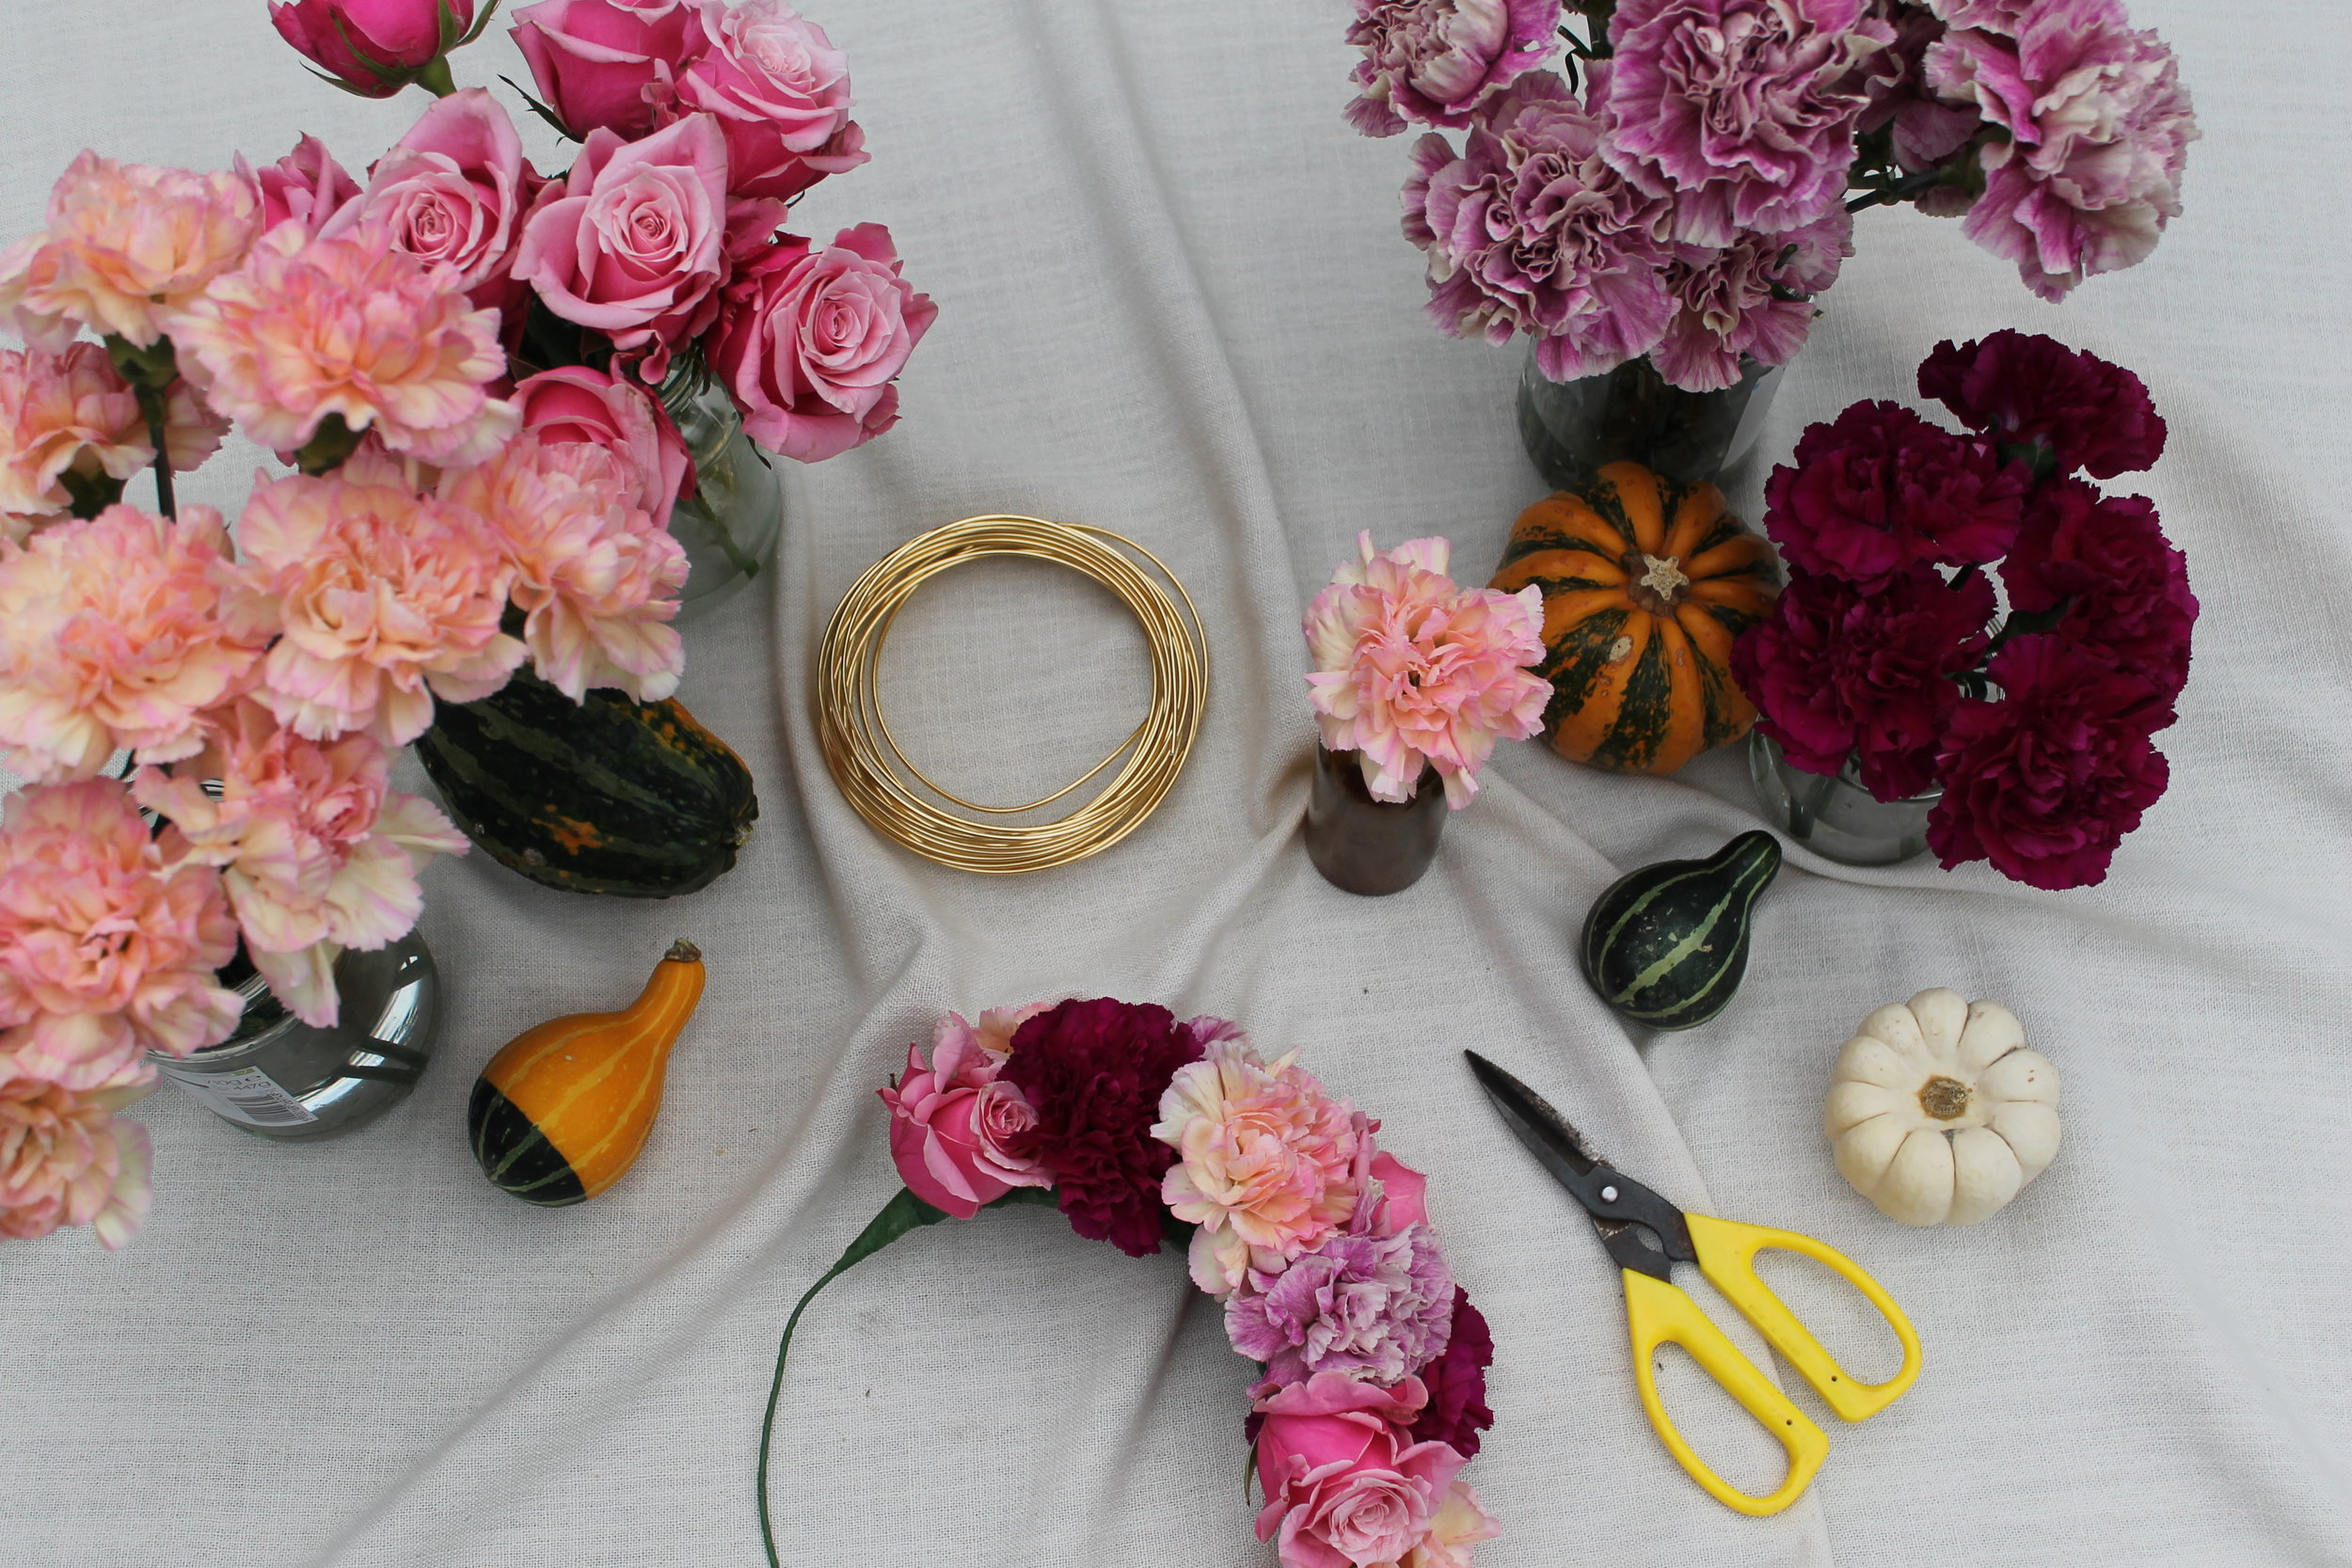 Custom Workshops - Whether you are a hen party looking for a fun afternoon of flower crown making, an aspiring florist looking to hone your techniques or a local business wanting to make christmas wreaths with your team of hero's, special requests are always welcome.Get in touch and request a custom experience here.